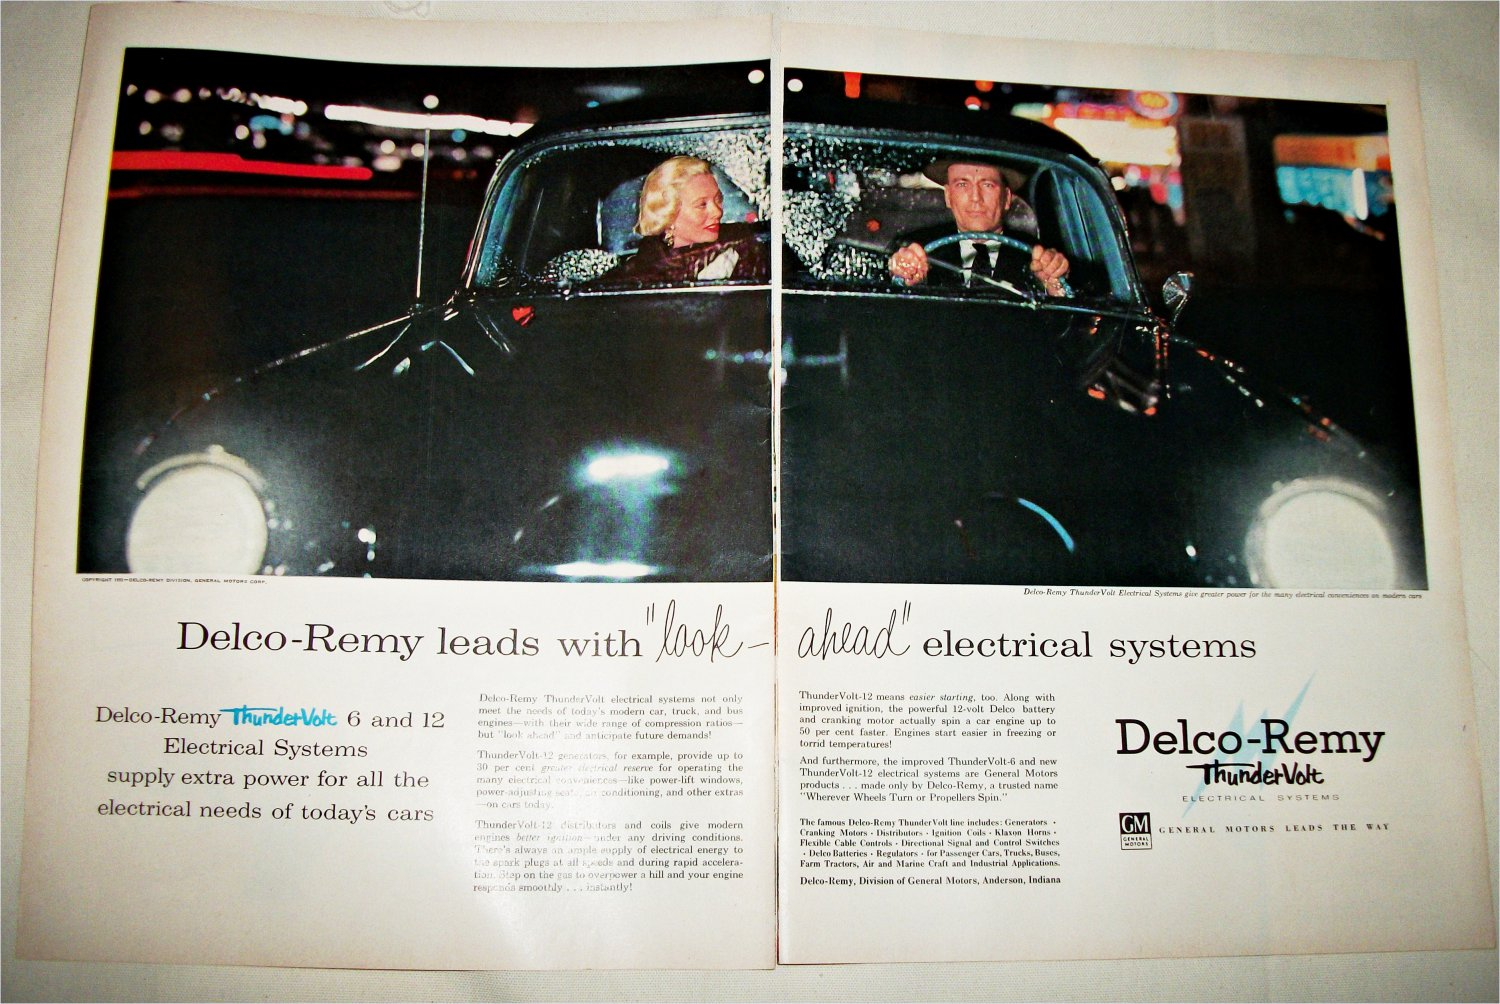 1955 Delco-Remy Thundervolt Electrical Systems ad #1